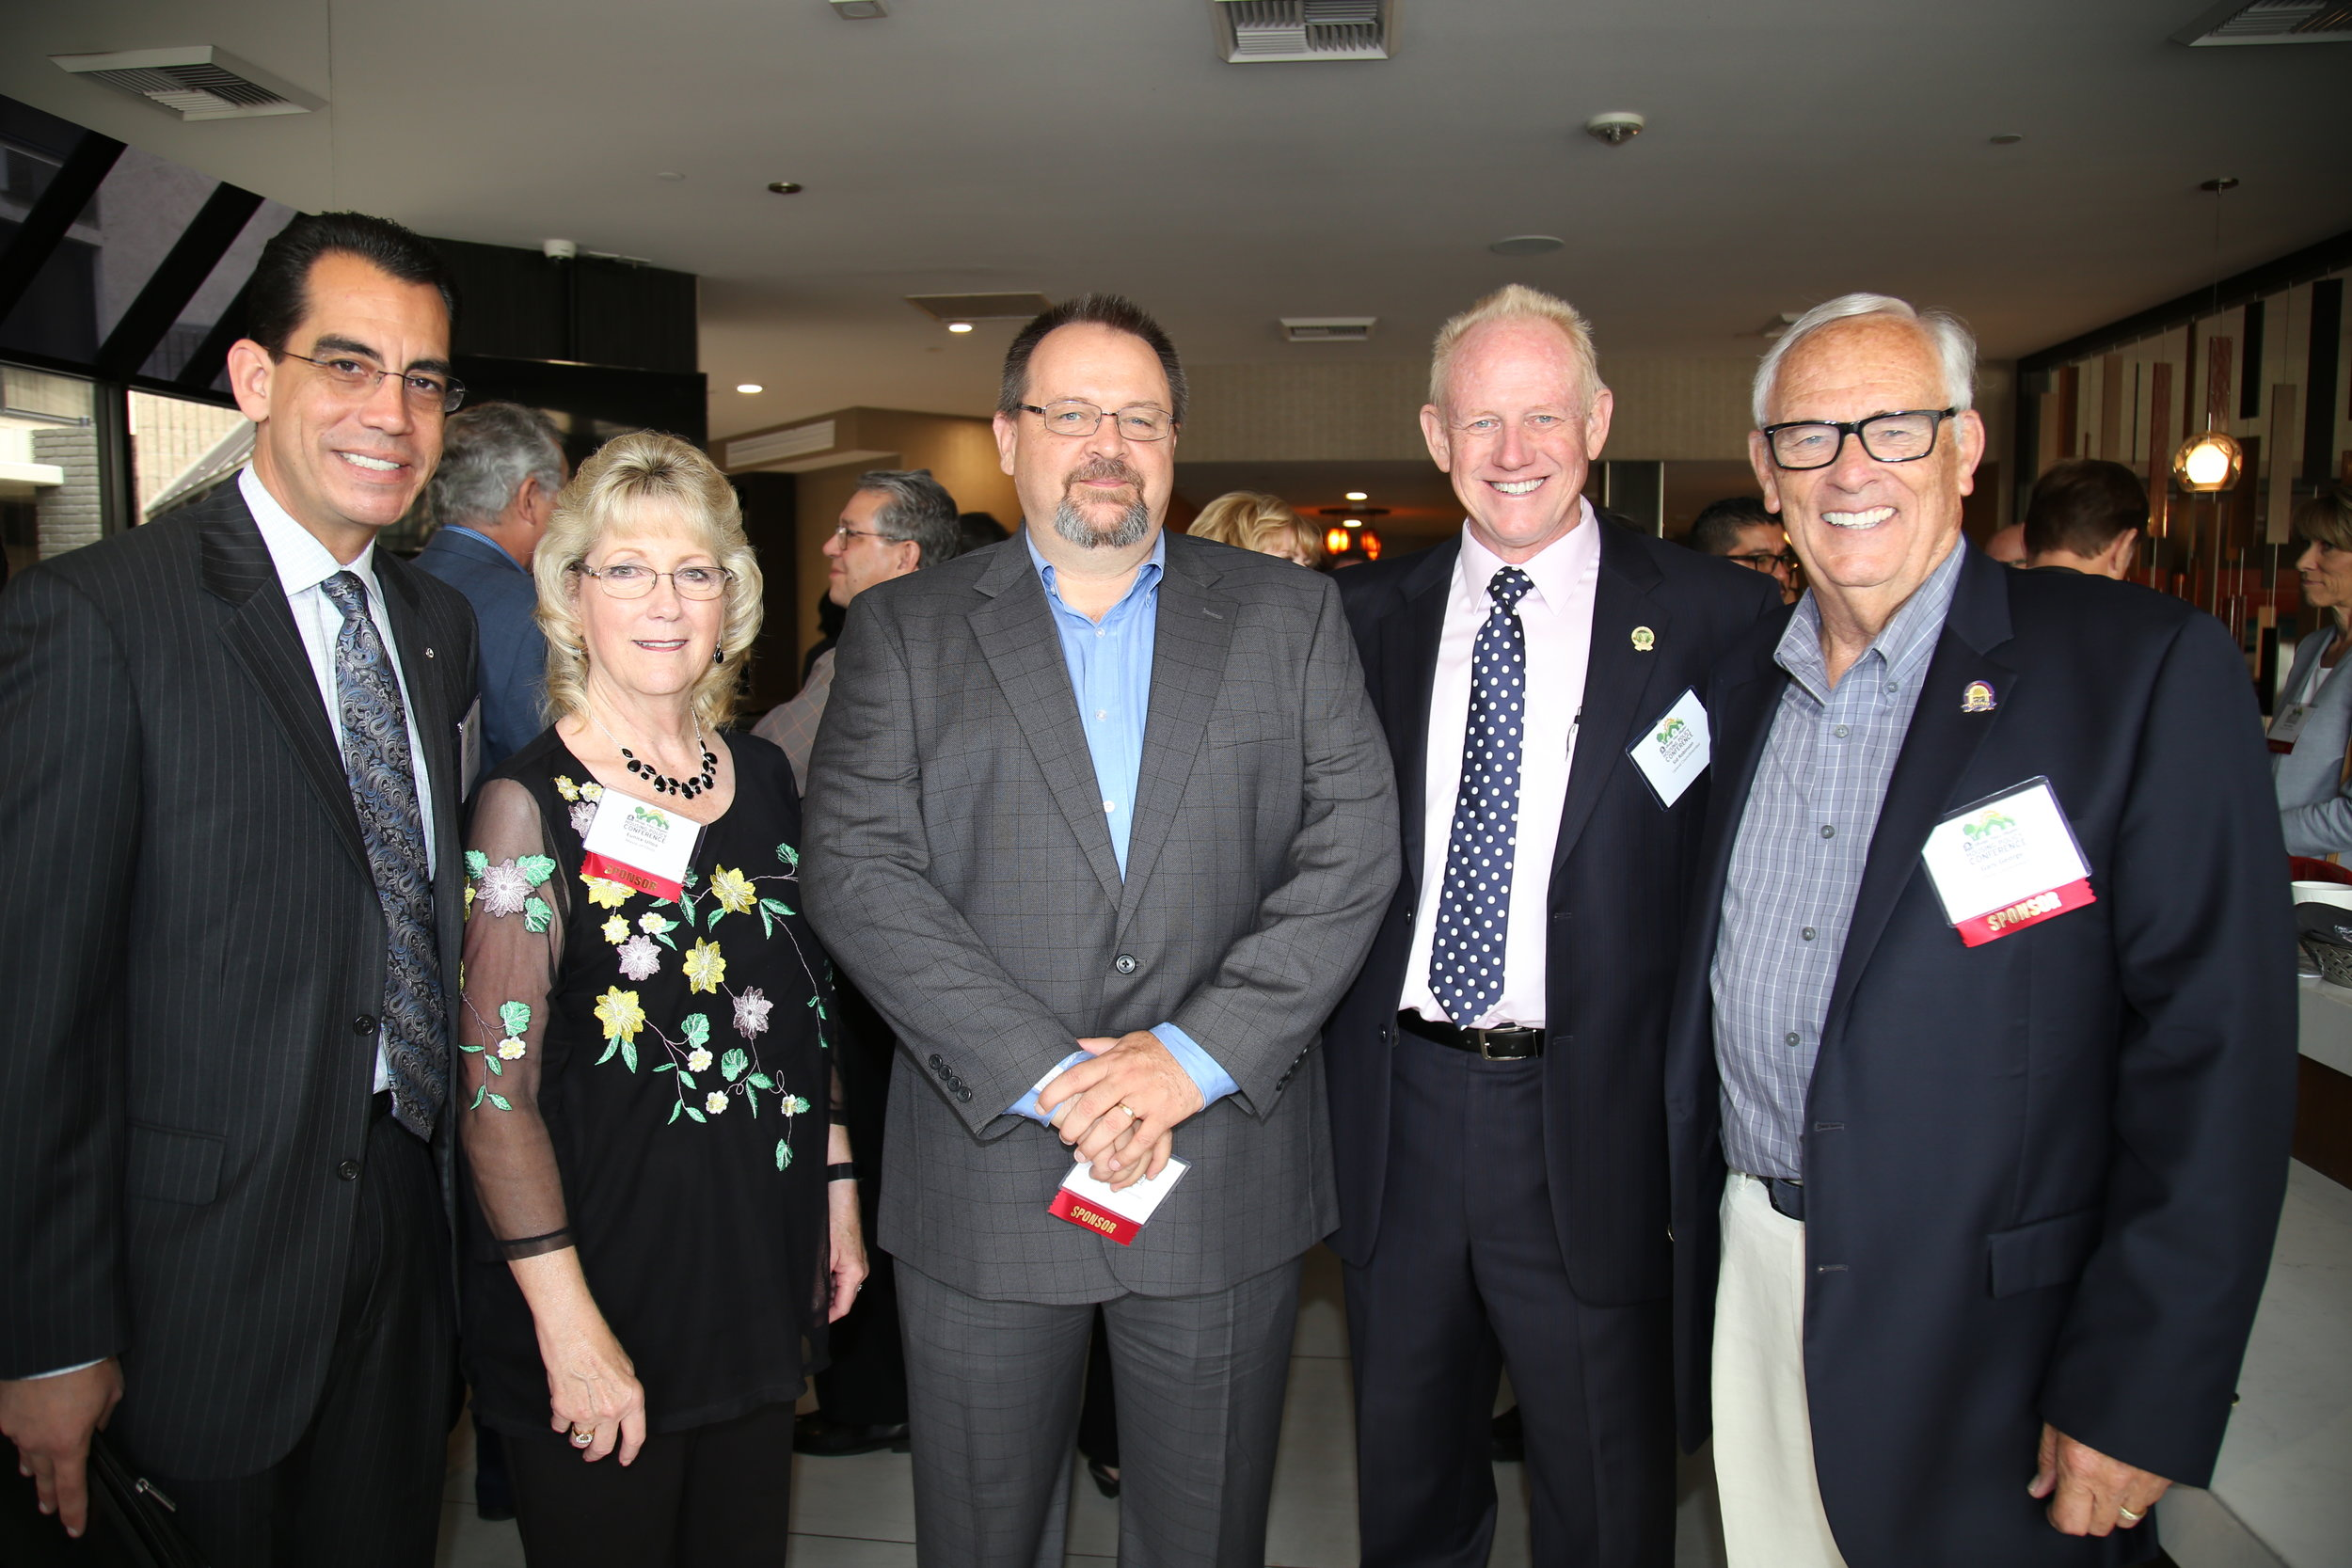 (From left to right) CEO Carlos Rodriguez, Chino Mayor Eunice Ulloa, BIABV President Phil Burum, Upland Councilmember Sid Robinson, Chino Councilmember Gary George.